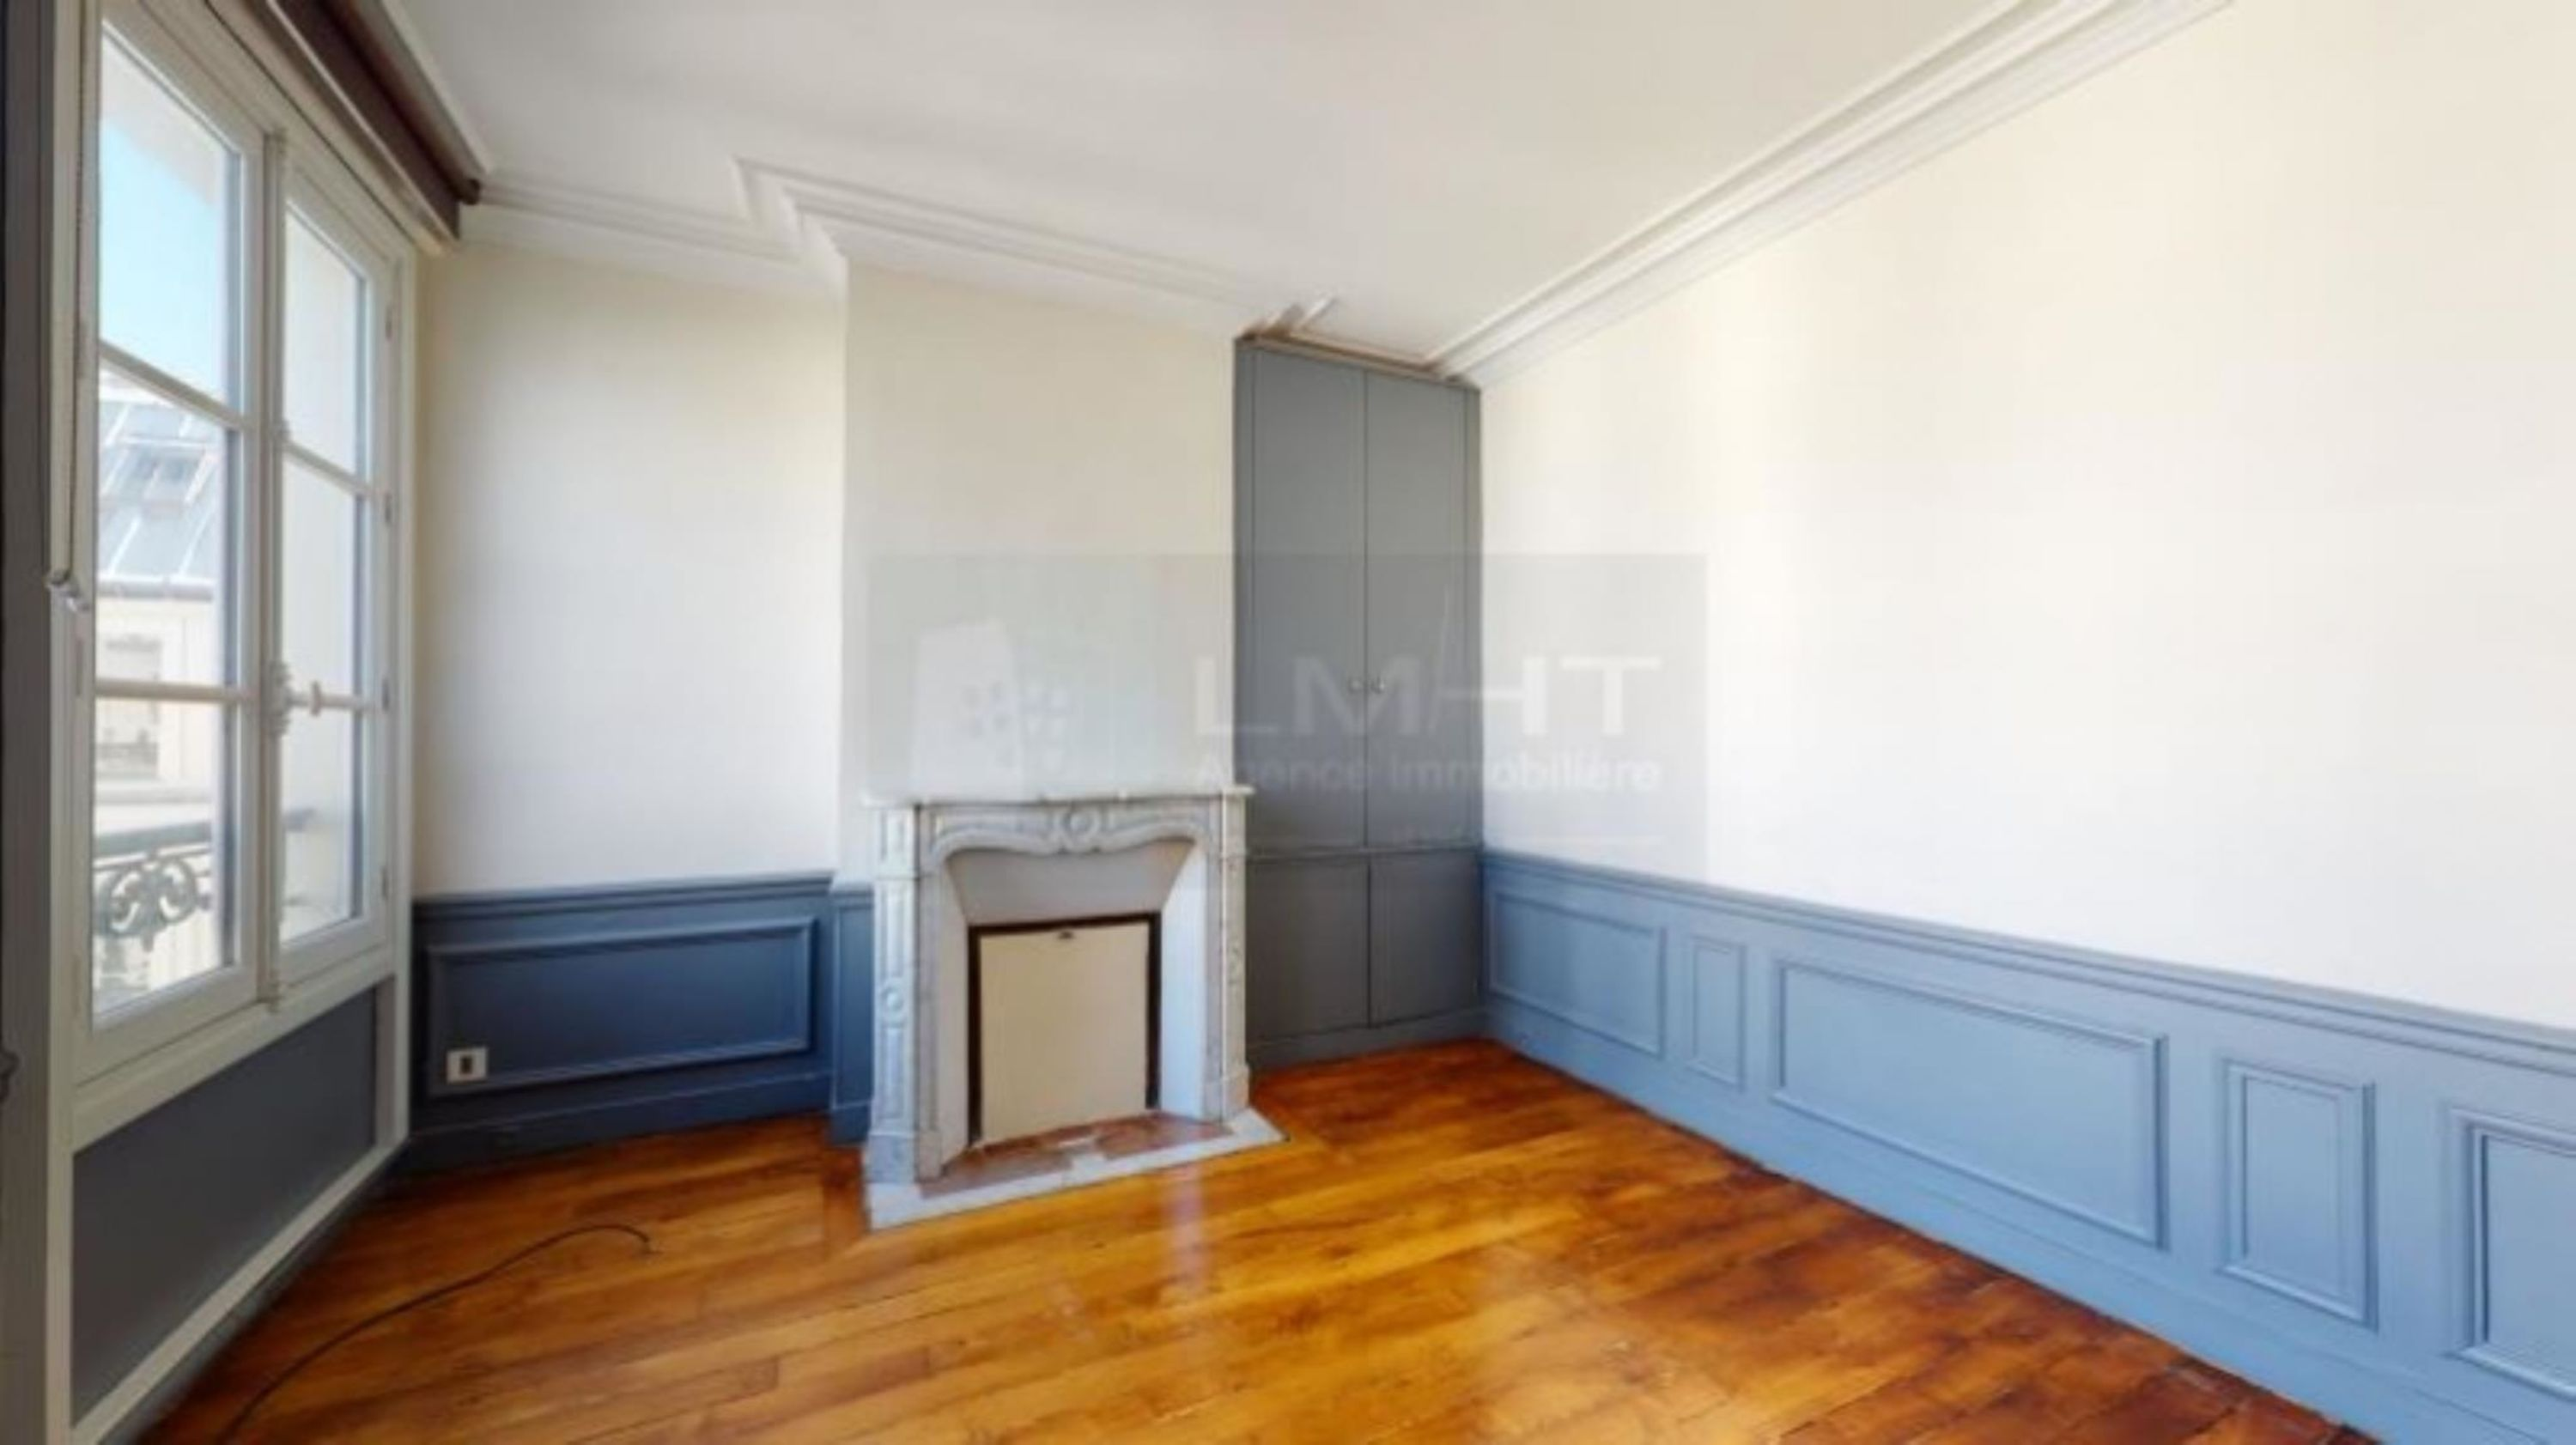 agence immobilière sevres 92 le chesnay 78 achat vente location appartement maison immobilier LMHT ANF UFFBOHMJ